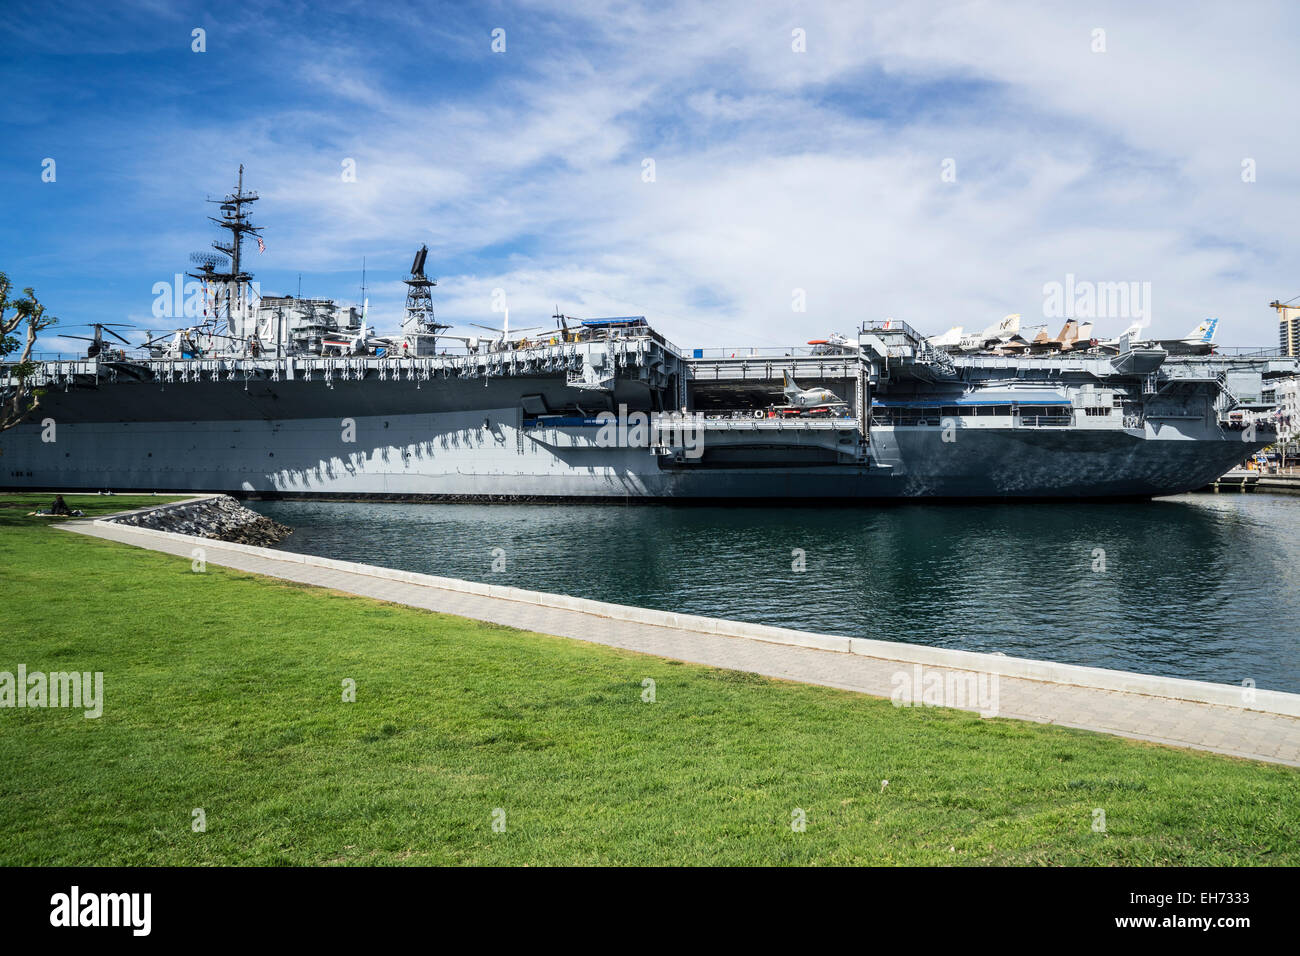 USS Midway Aircraft Carrier museum in San Diego California - Stock Image